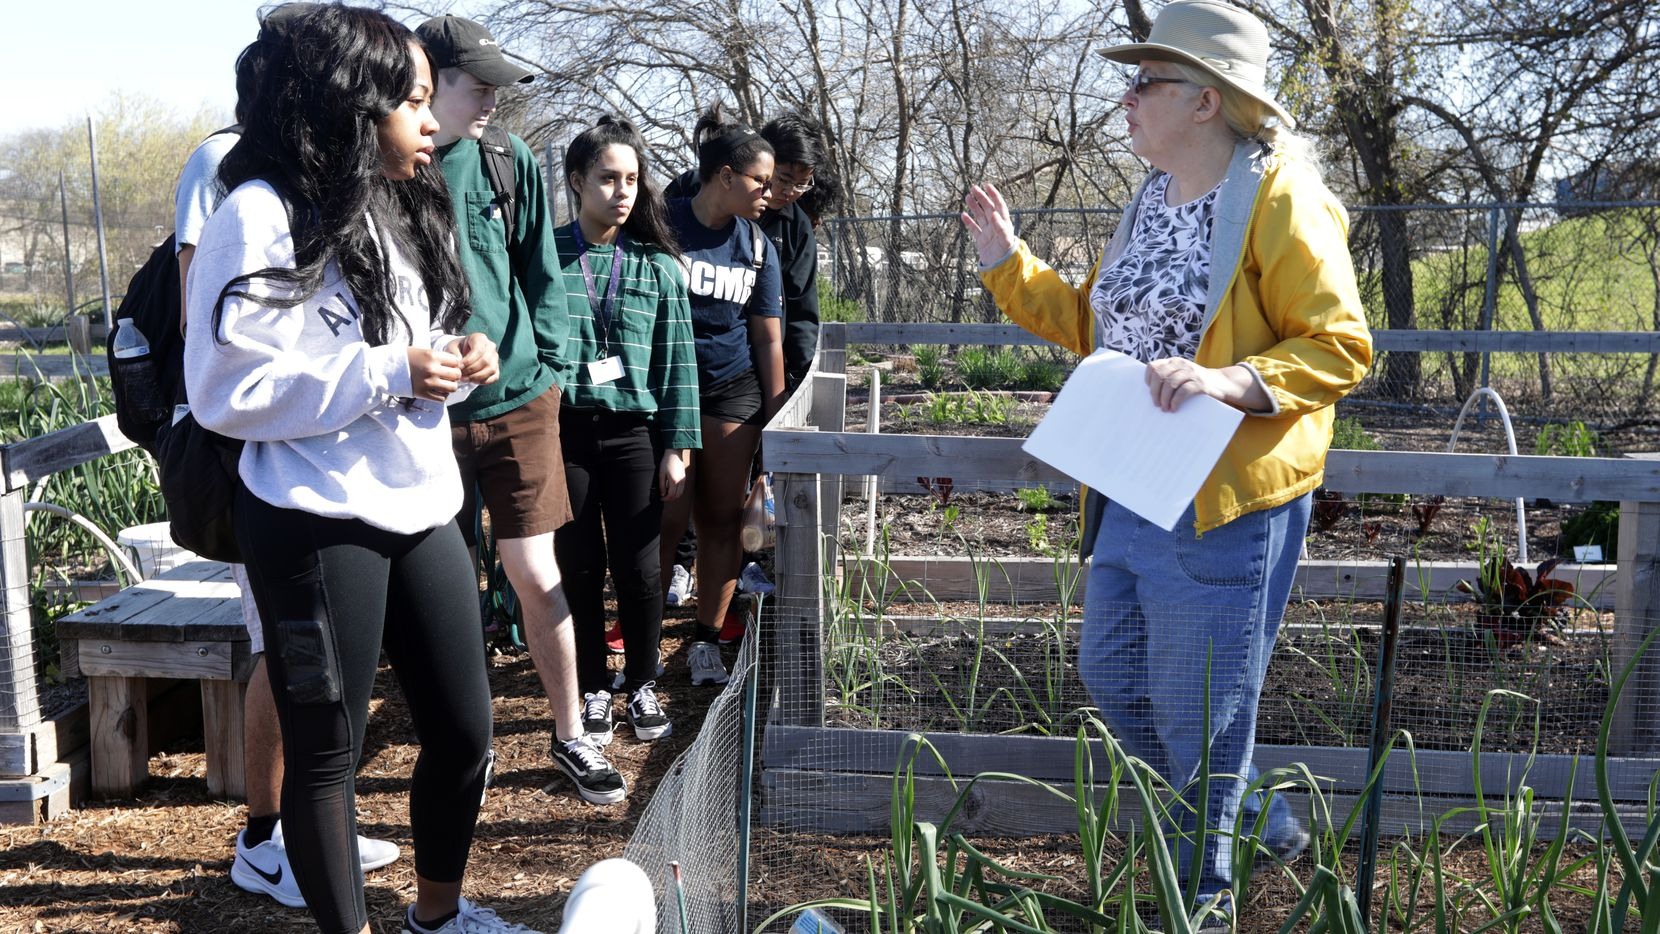 Volunteer Rebecca Brady tours the community gardens with a group of students at the Plano Environmental Education Center in Plano.